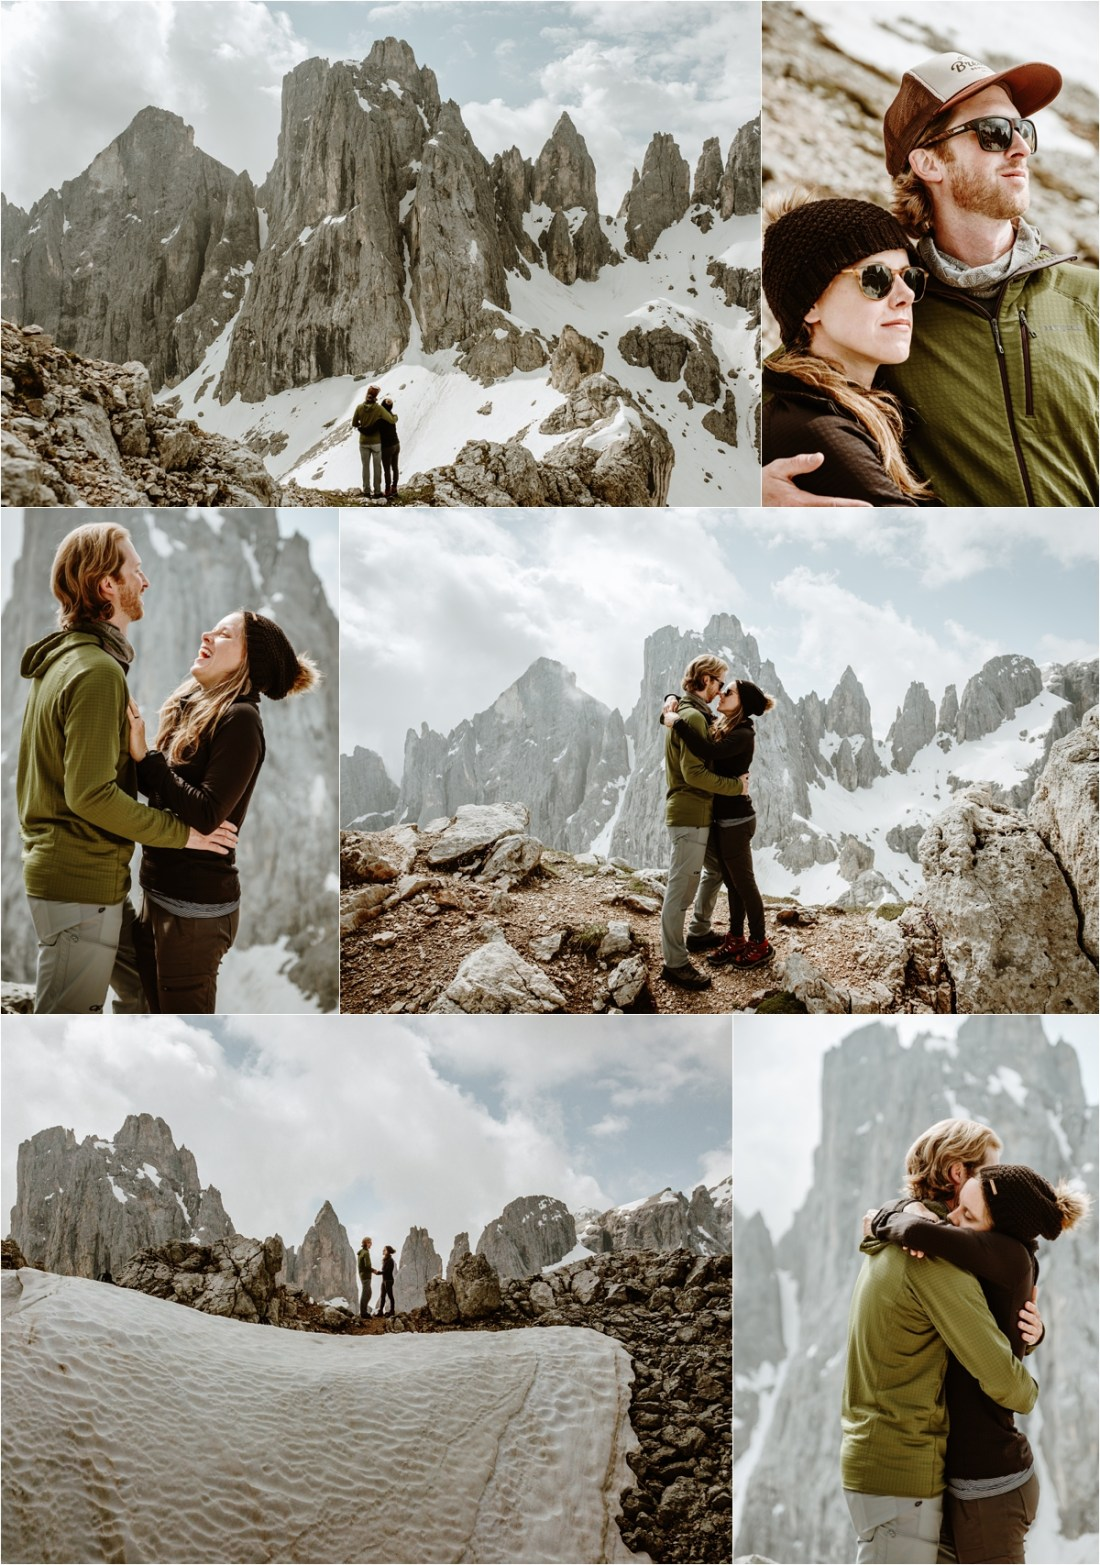 Adam & Michelle enjoying the views at the top of the Cima Mulaz in the Dolomites, the day before their elopement. Photography by Wild Connections Photography